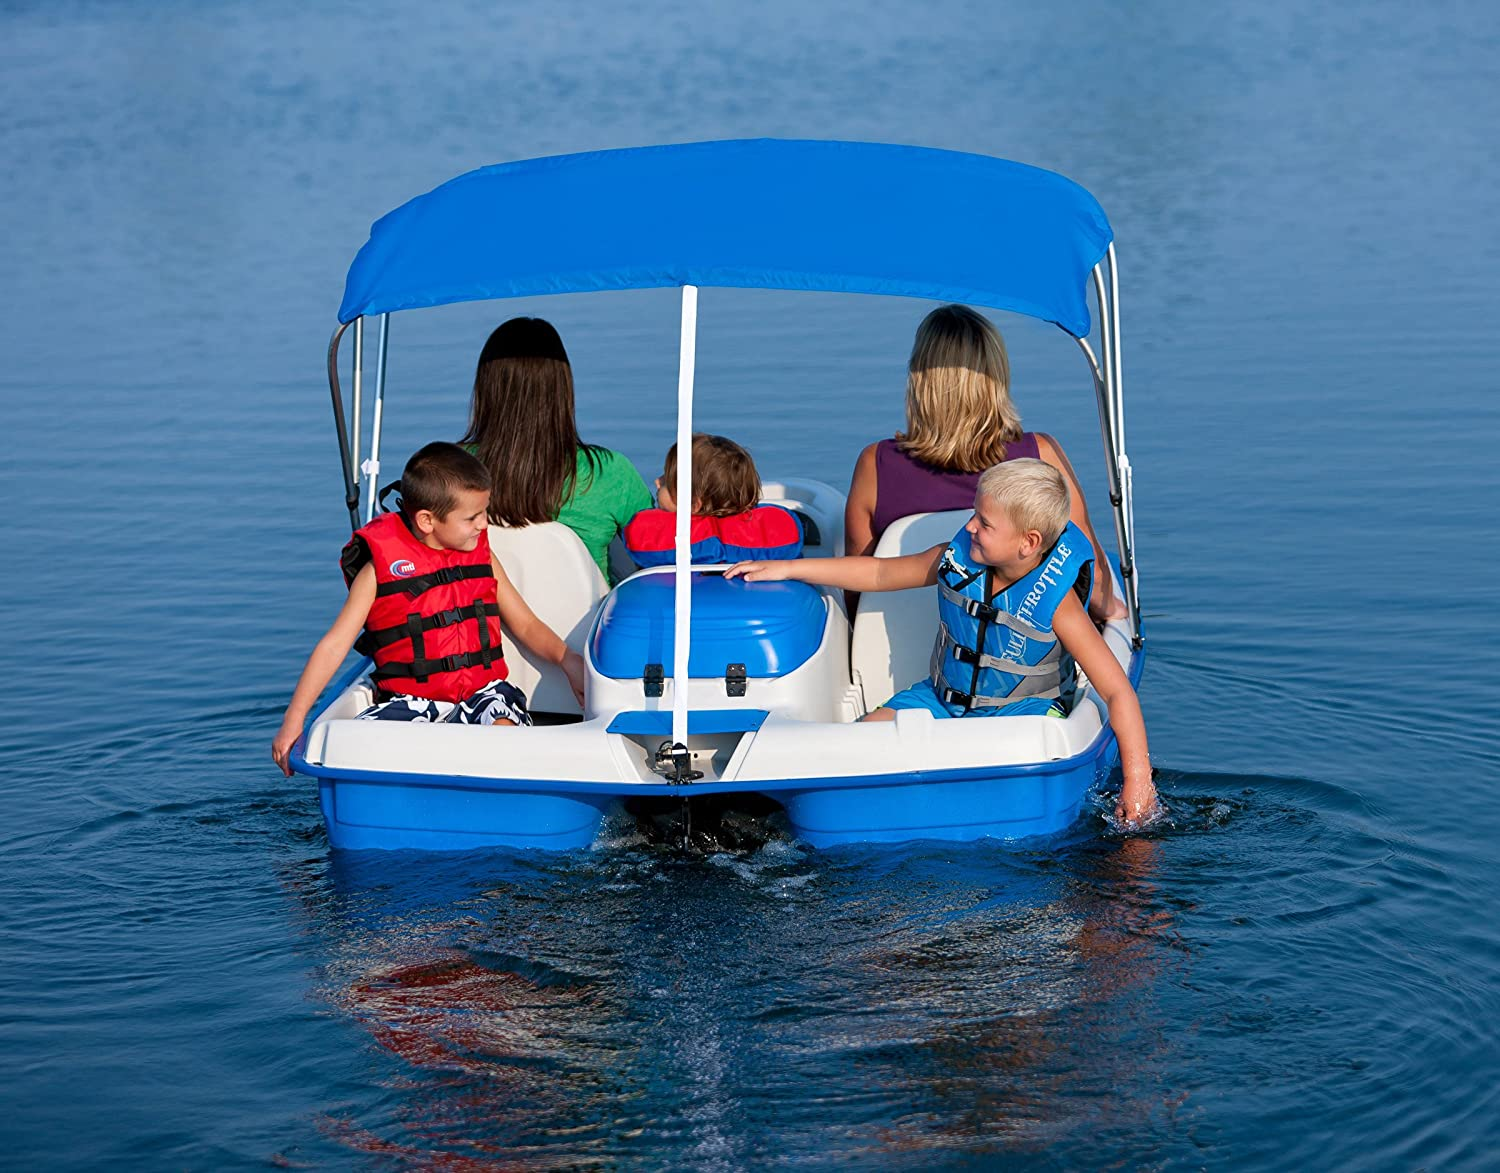 Amazon.com  Sun Dolphin Water Wheeler Electric ASL 5 Person Pedal Boat with Canopy (Blue)  Sports Fan Canopies  Sports u0026 Outdoors & Amazon.com : Sun Dolphin Water Wheeler Electric ASL 5 Person Pedal ...